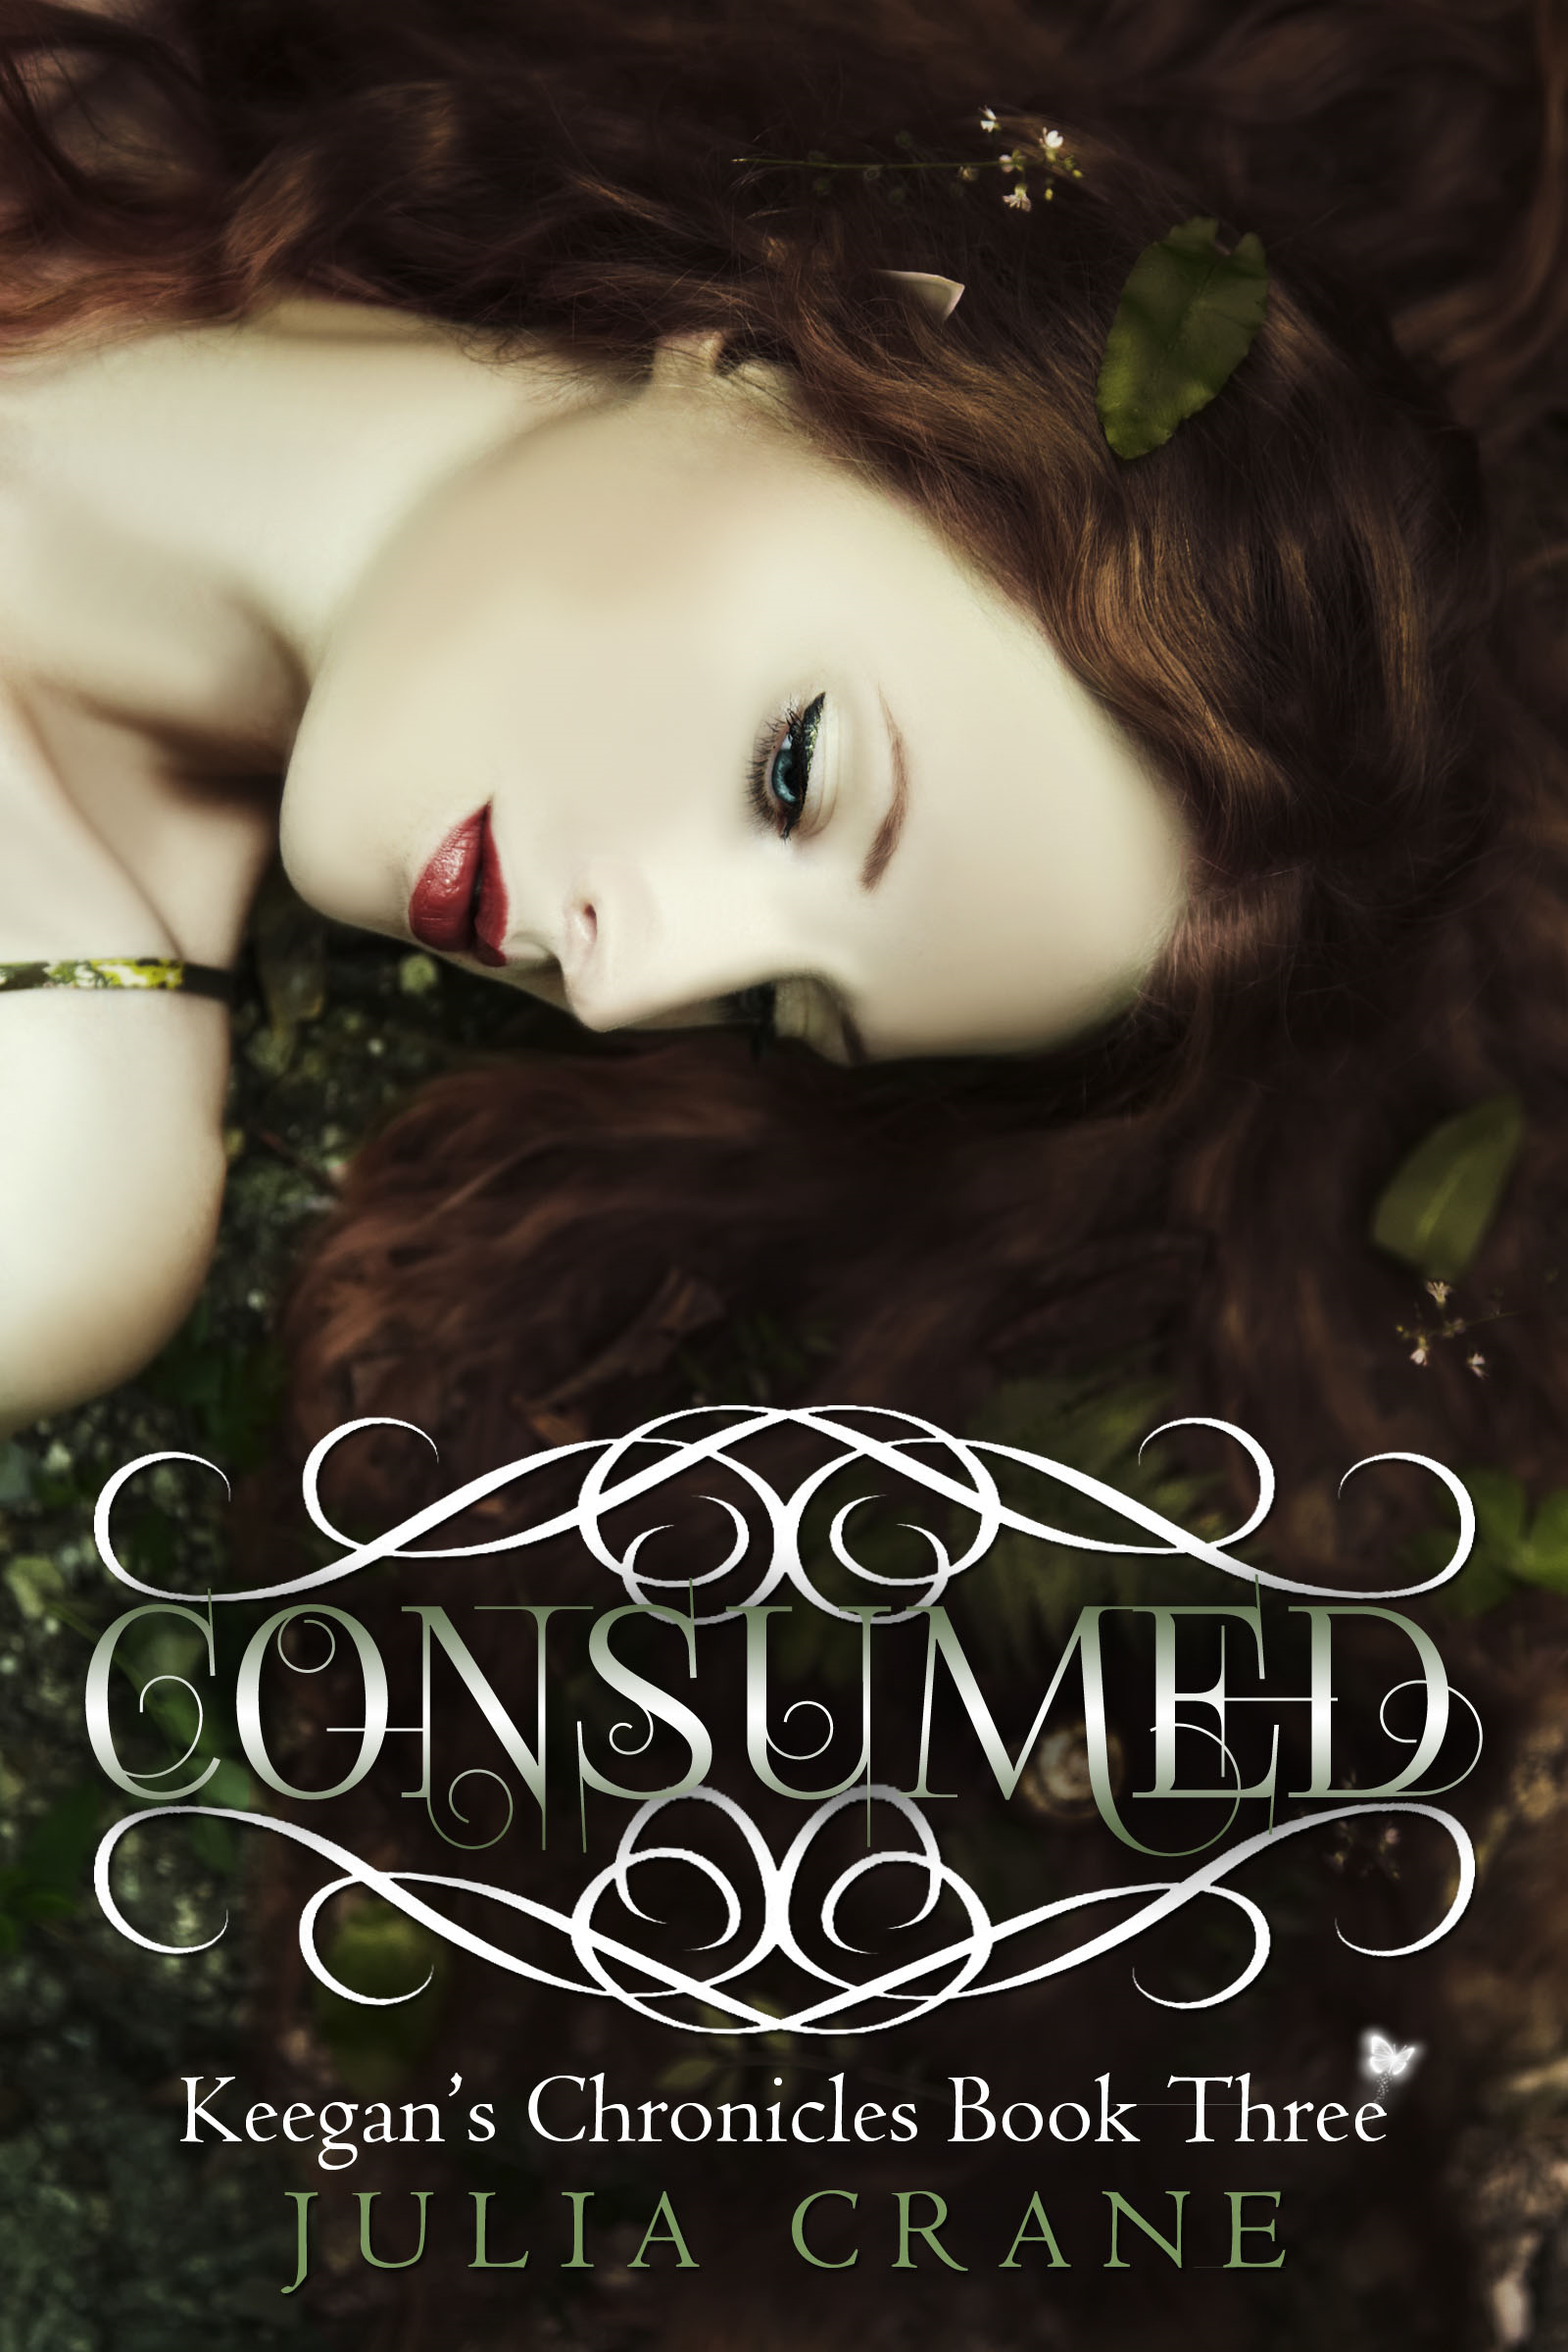 Consumed By: Julia Crane